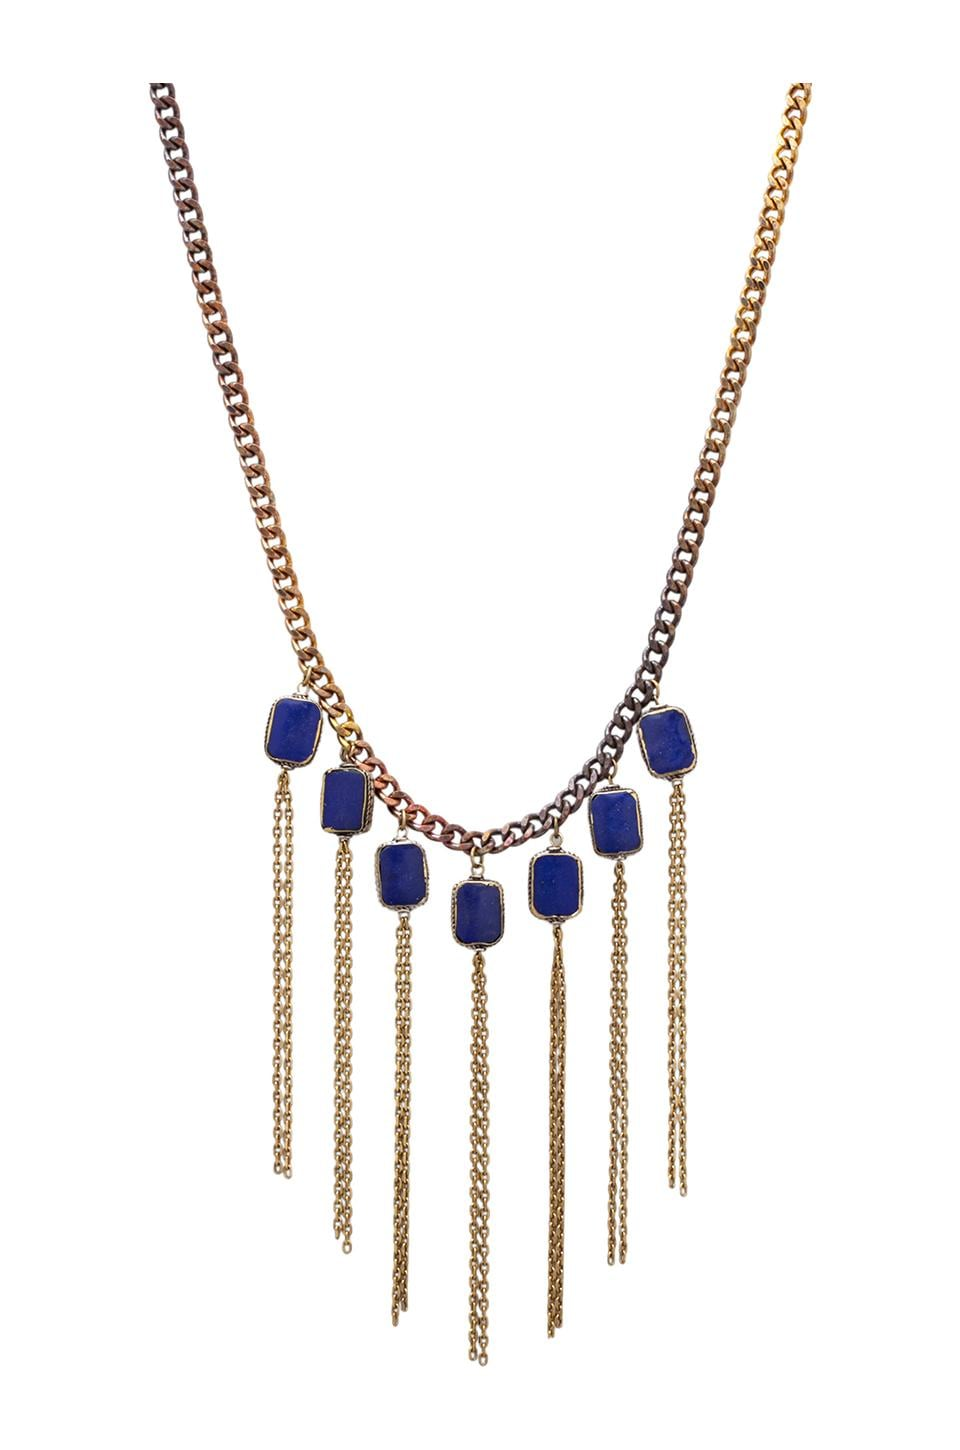 Vanessa Mooney Crazy Love Necklace in Gold